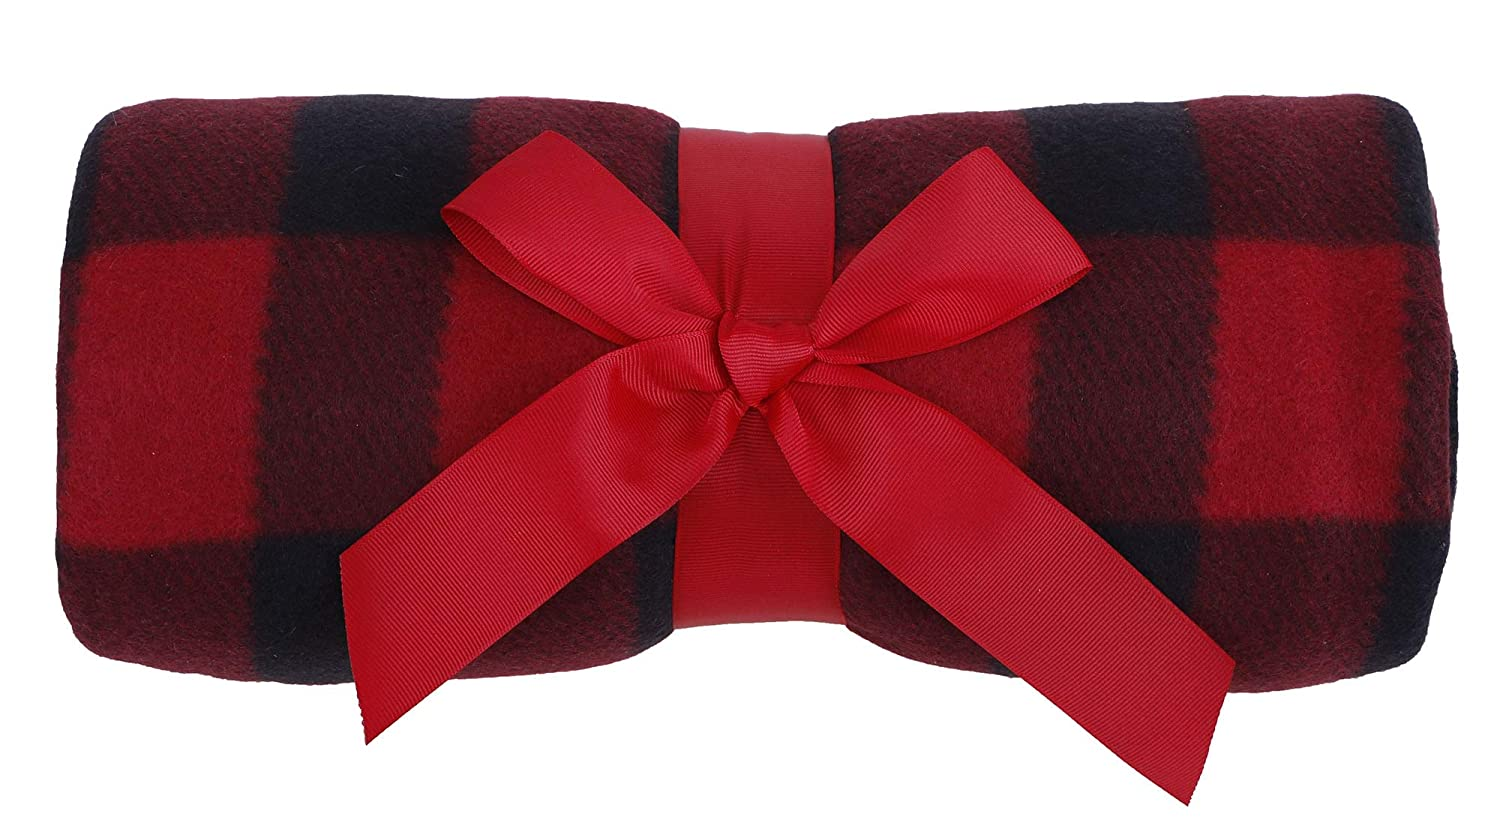 Simplicity Winter Warm Red and Black Buffalo Plaid Patterned Decorative Super Soft Twin Woven Fleece Couch Throw Blanket